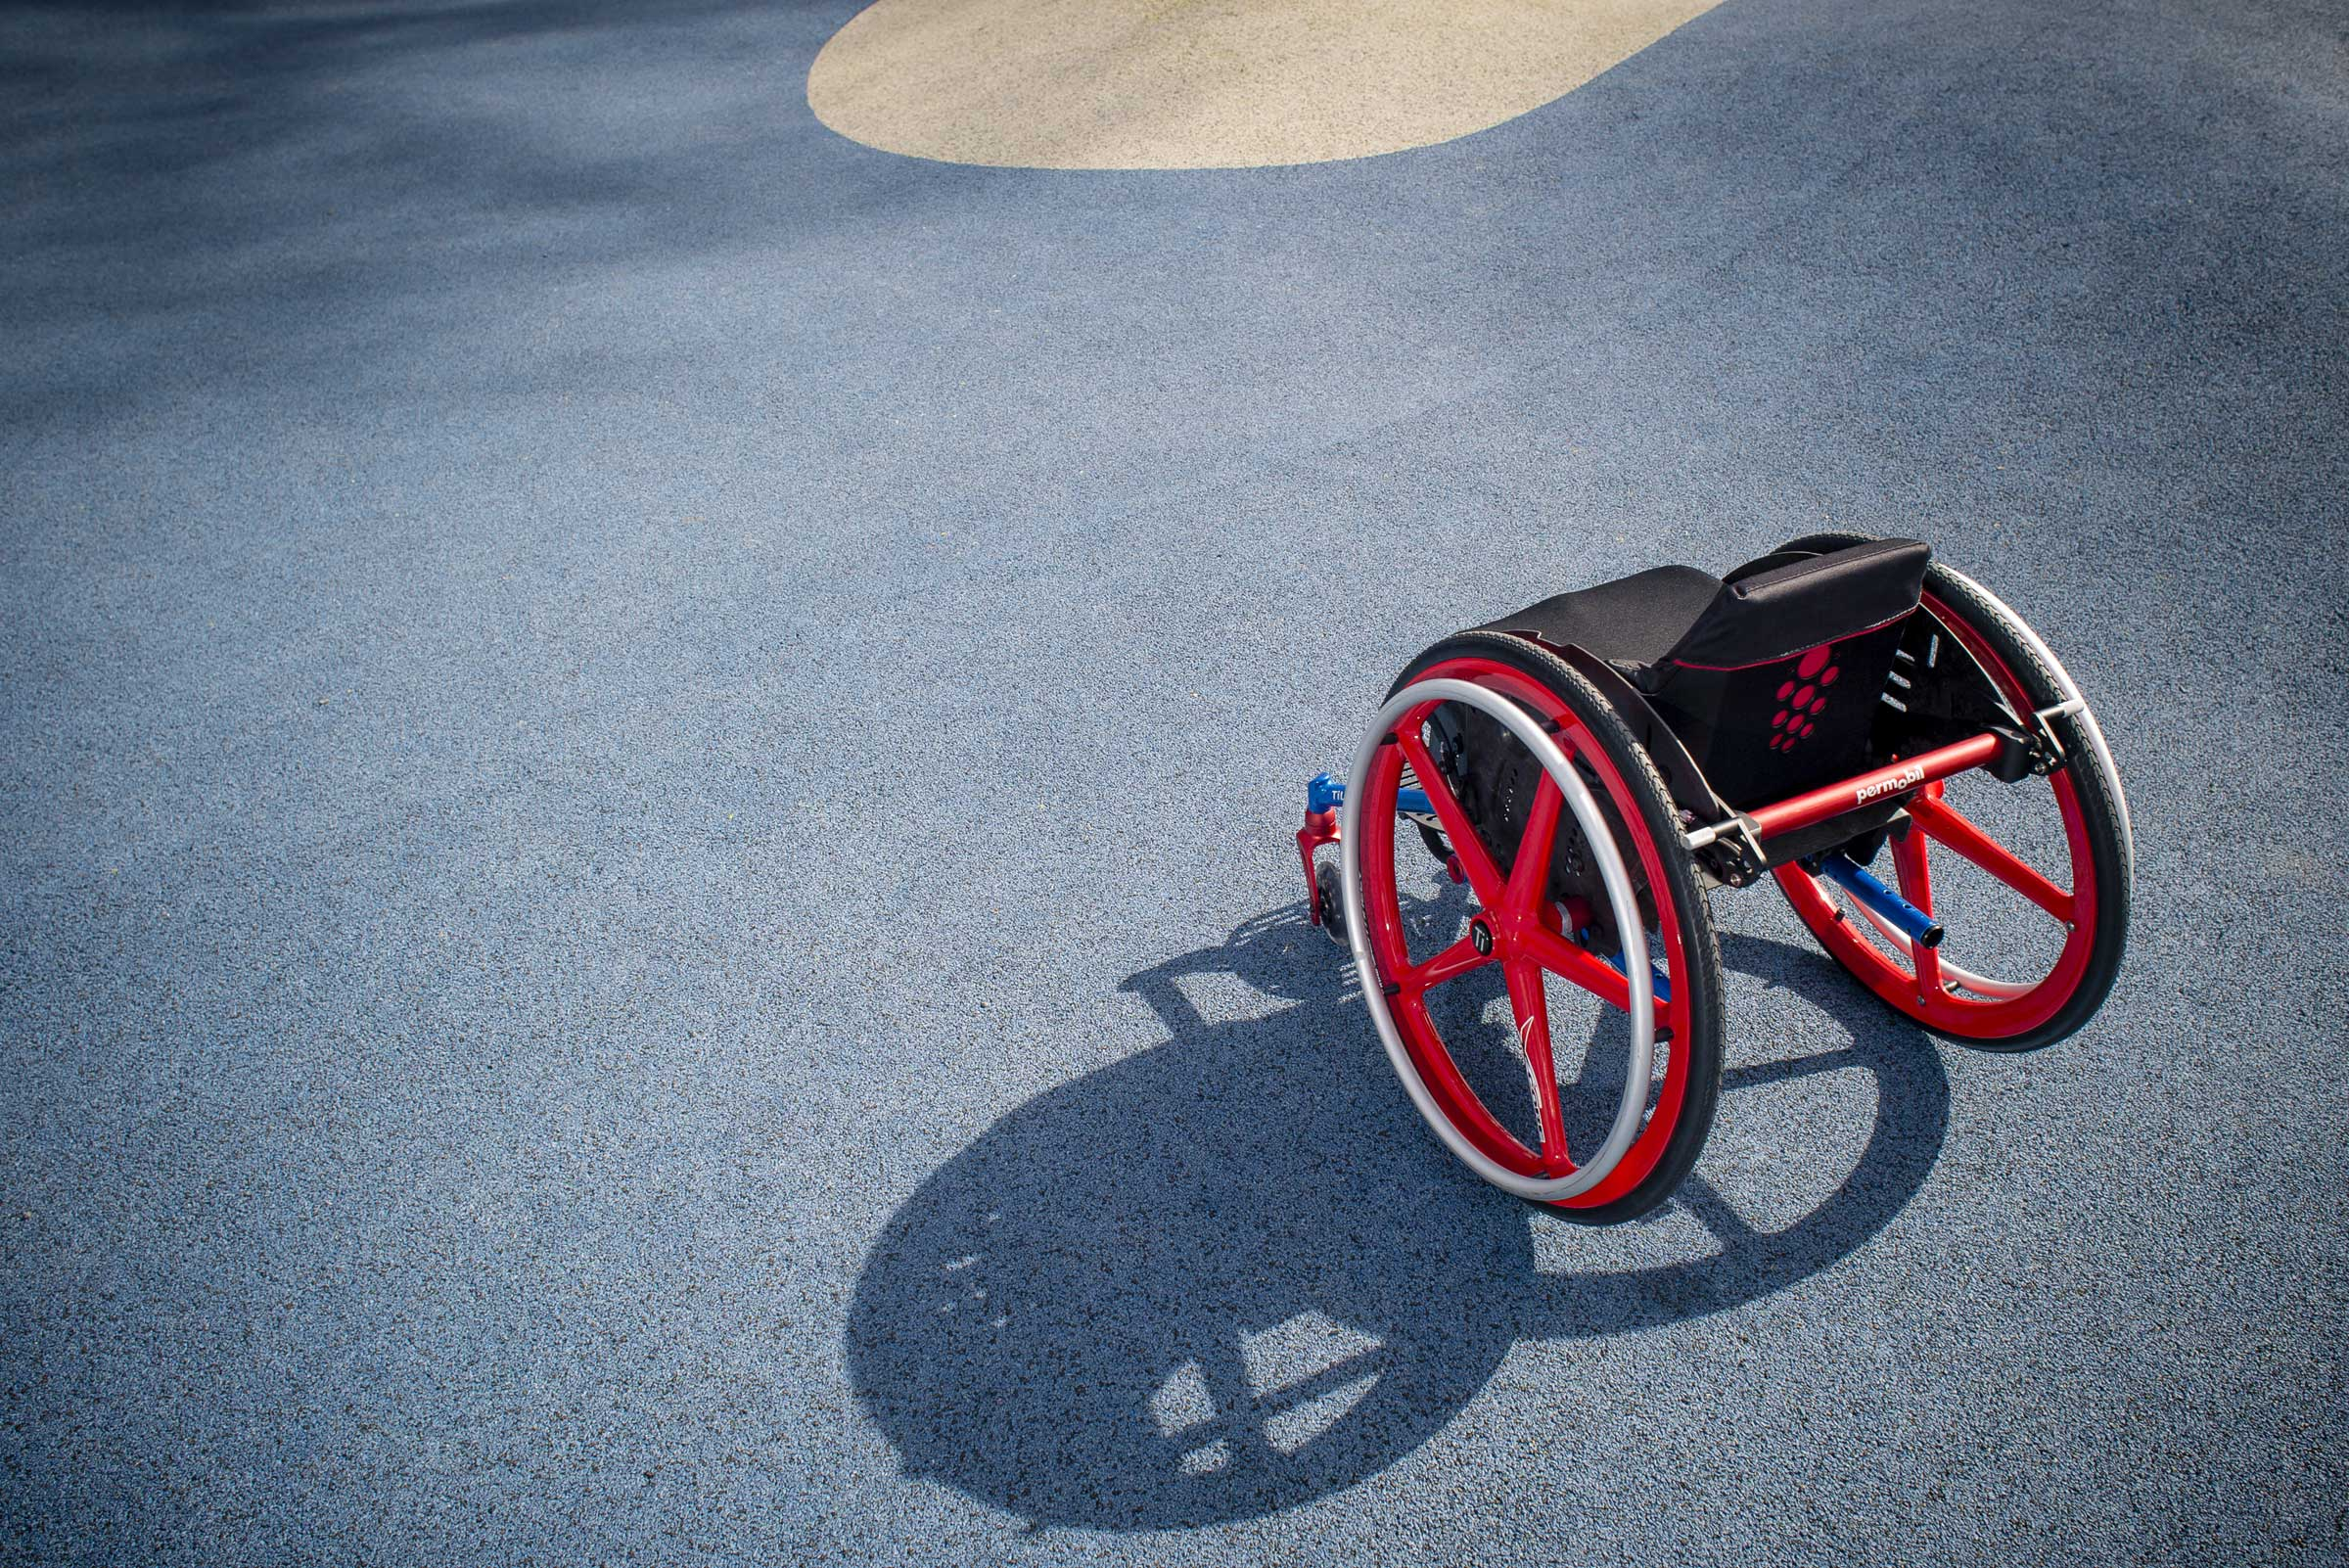 Rear Top view of TiLite Pilot Wheelchair with the shadow